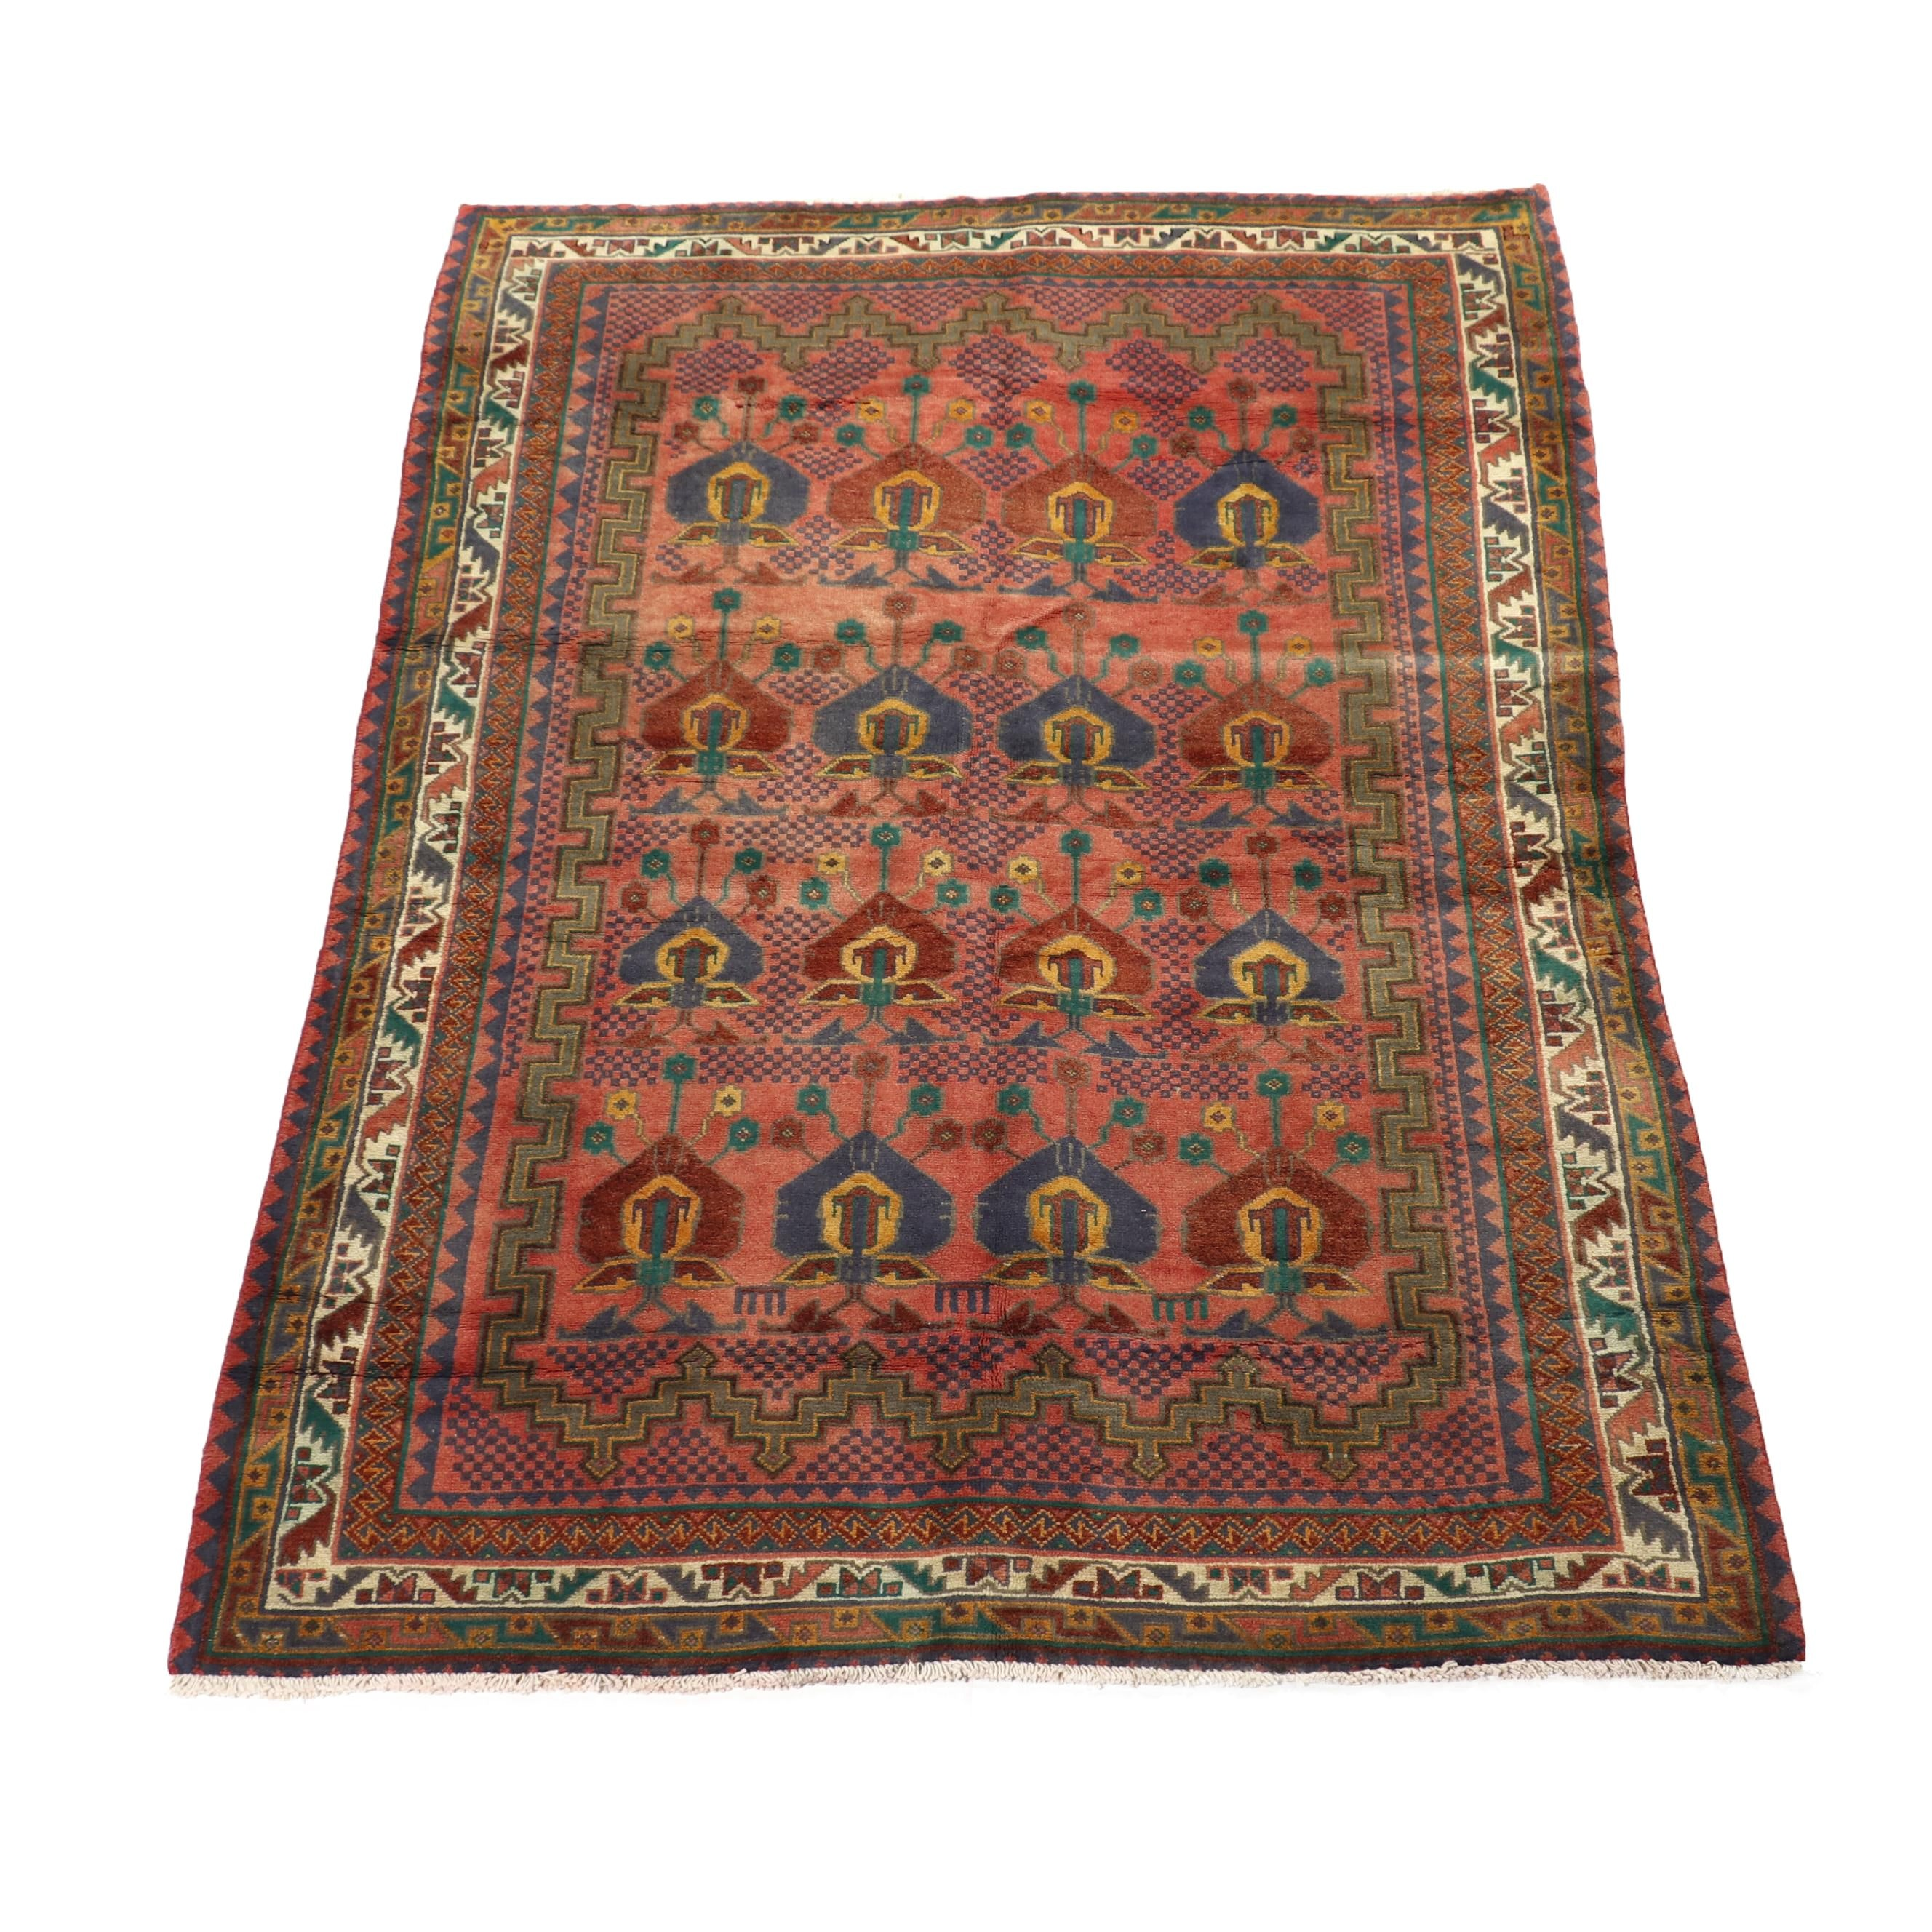 "Hand-Knotted Persian Kurdish Wool Rug with ""Shield"" pattern"